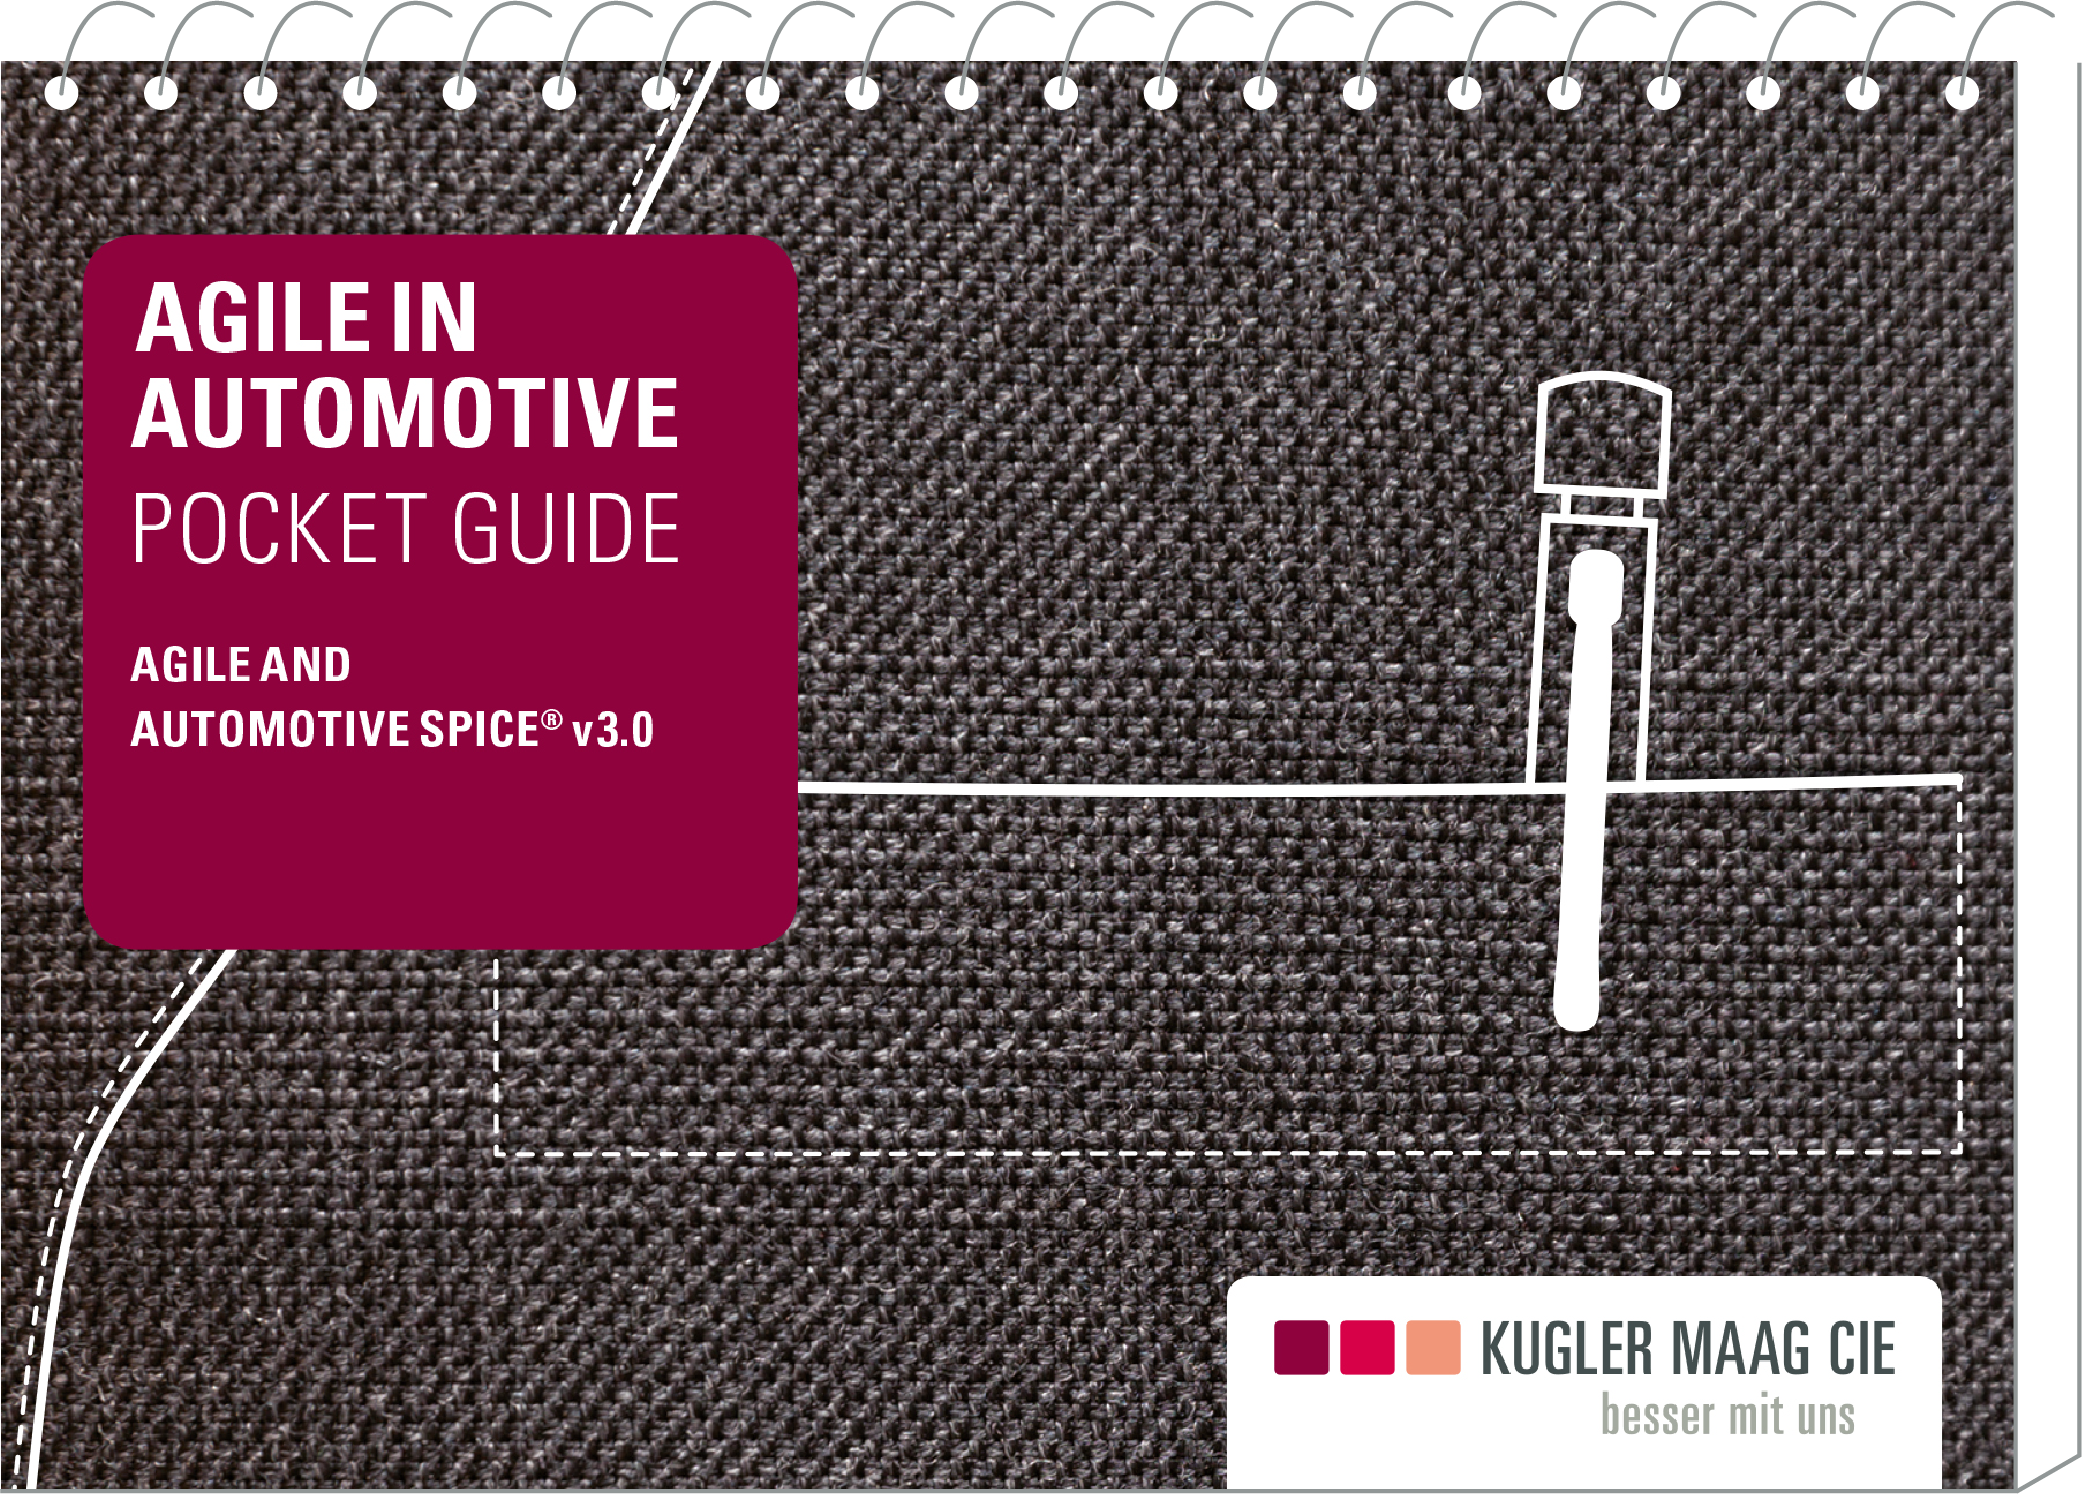 Pocketguide Automotive SPICE & Agile